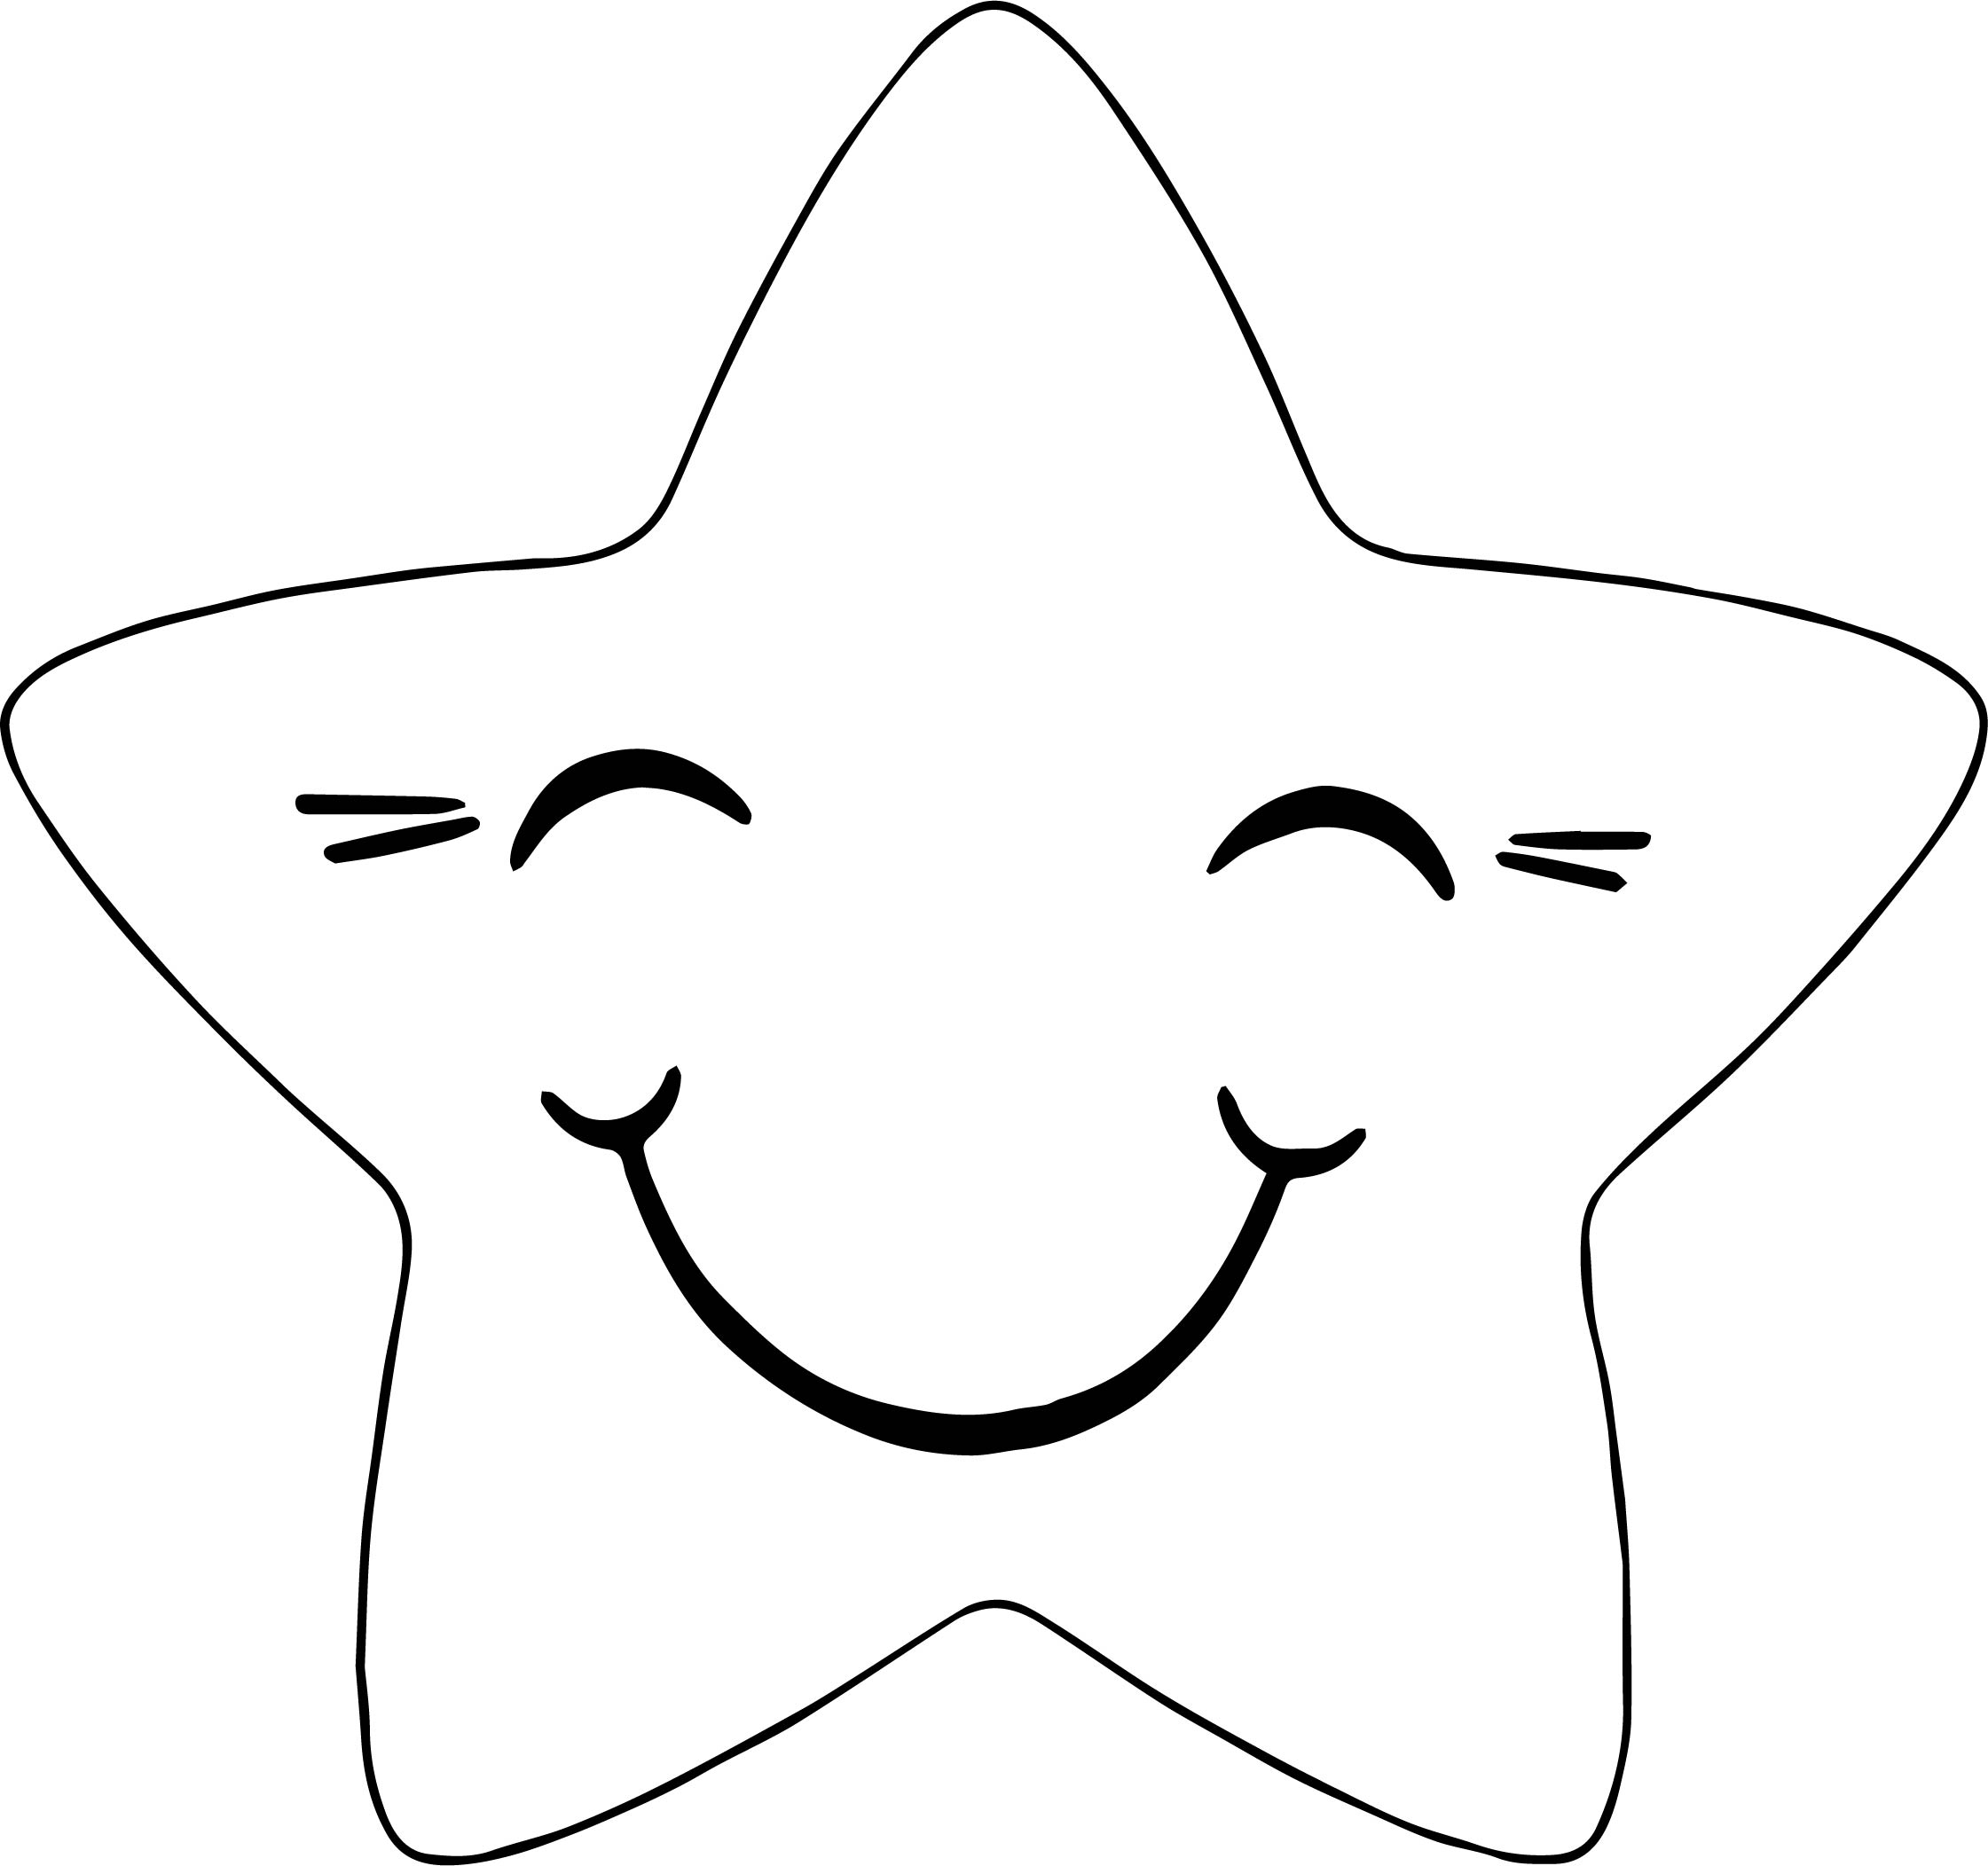 Happy Star We Coloring Page 31